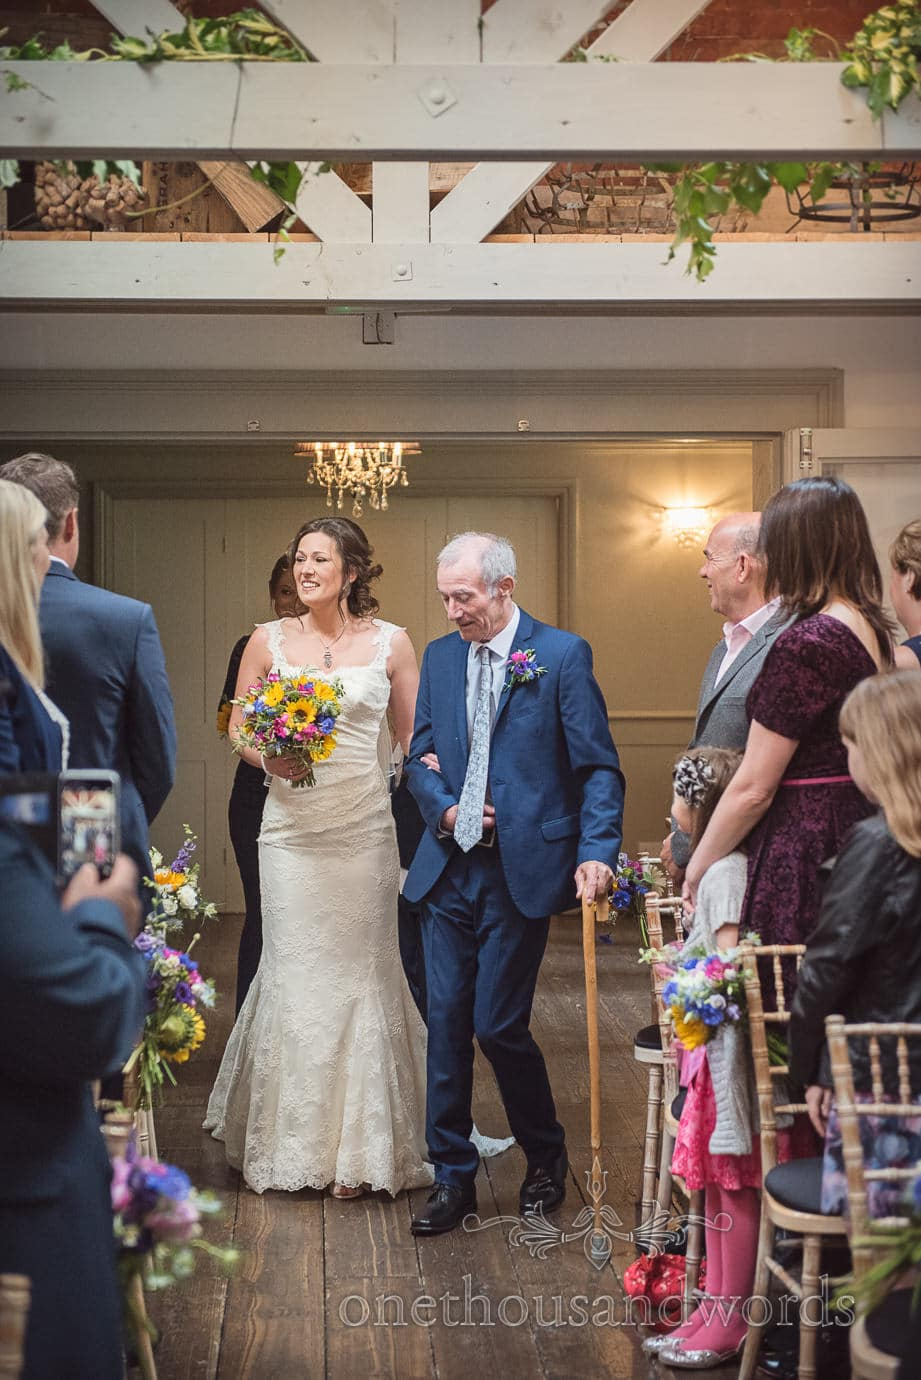 Bride with summer flowers bouquet walks down aisle at The Old Vicarage Wedding